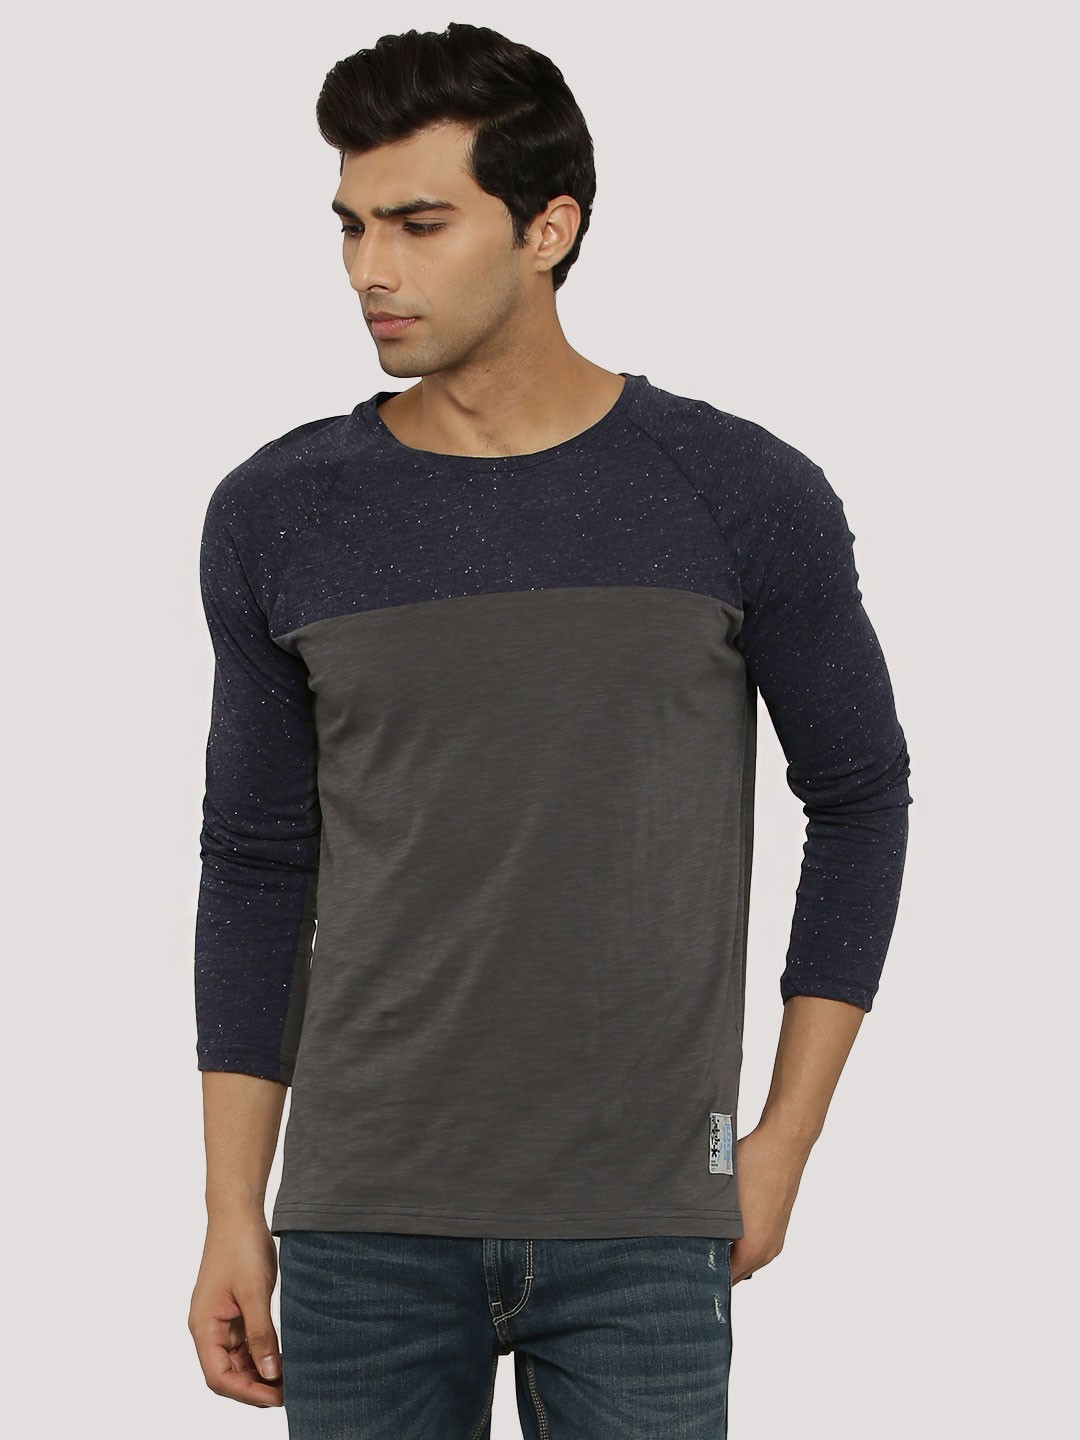 Buy atorse cut sew t shirt with side zip for men men 39 s for Cut shirts for men